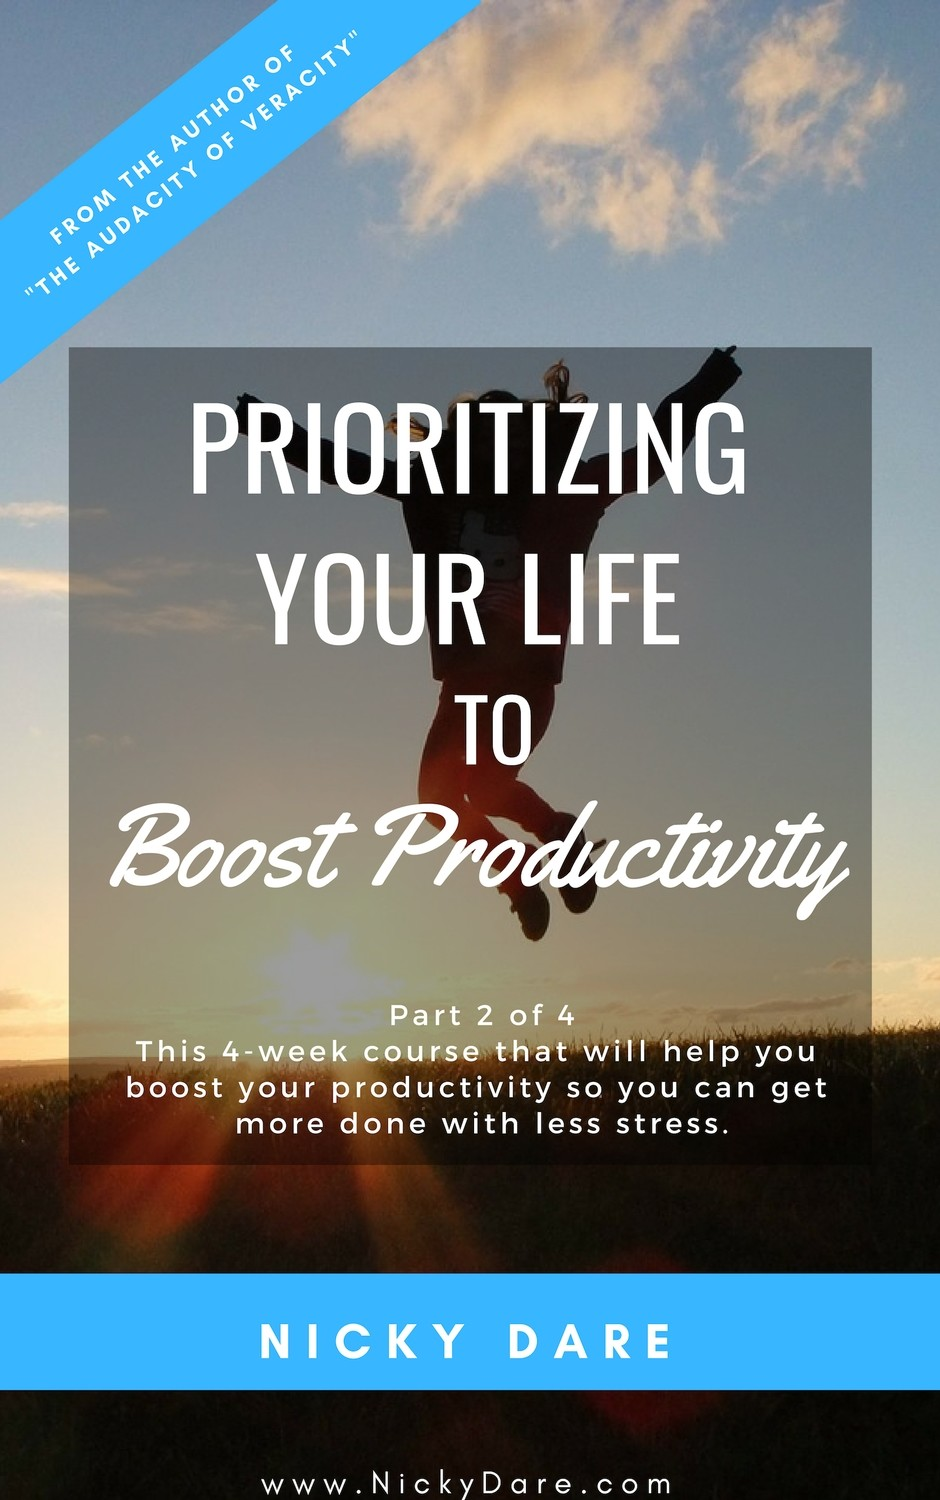 Part 2 of 4 | Prioritizing Your Life